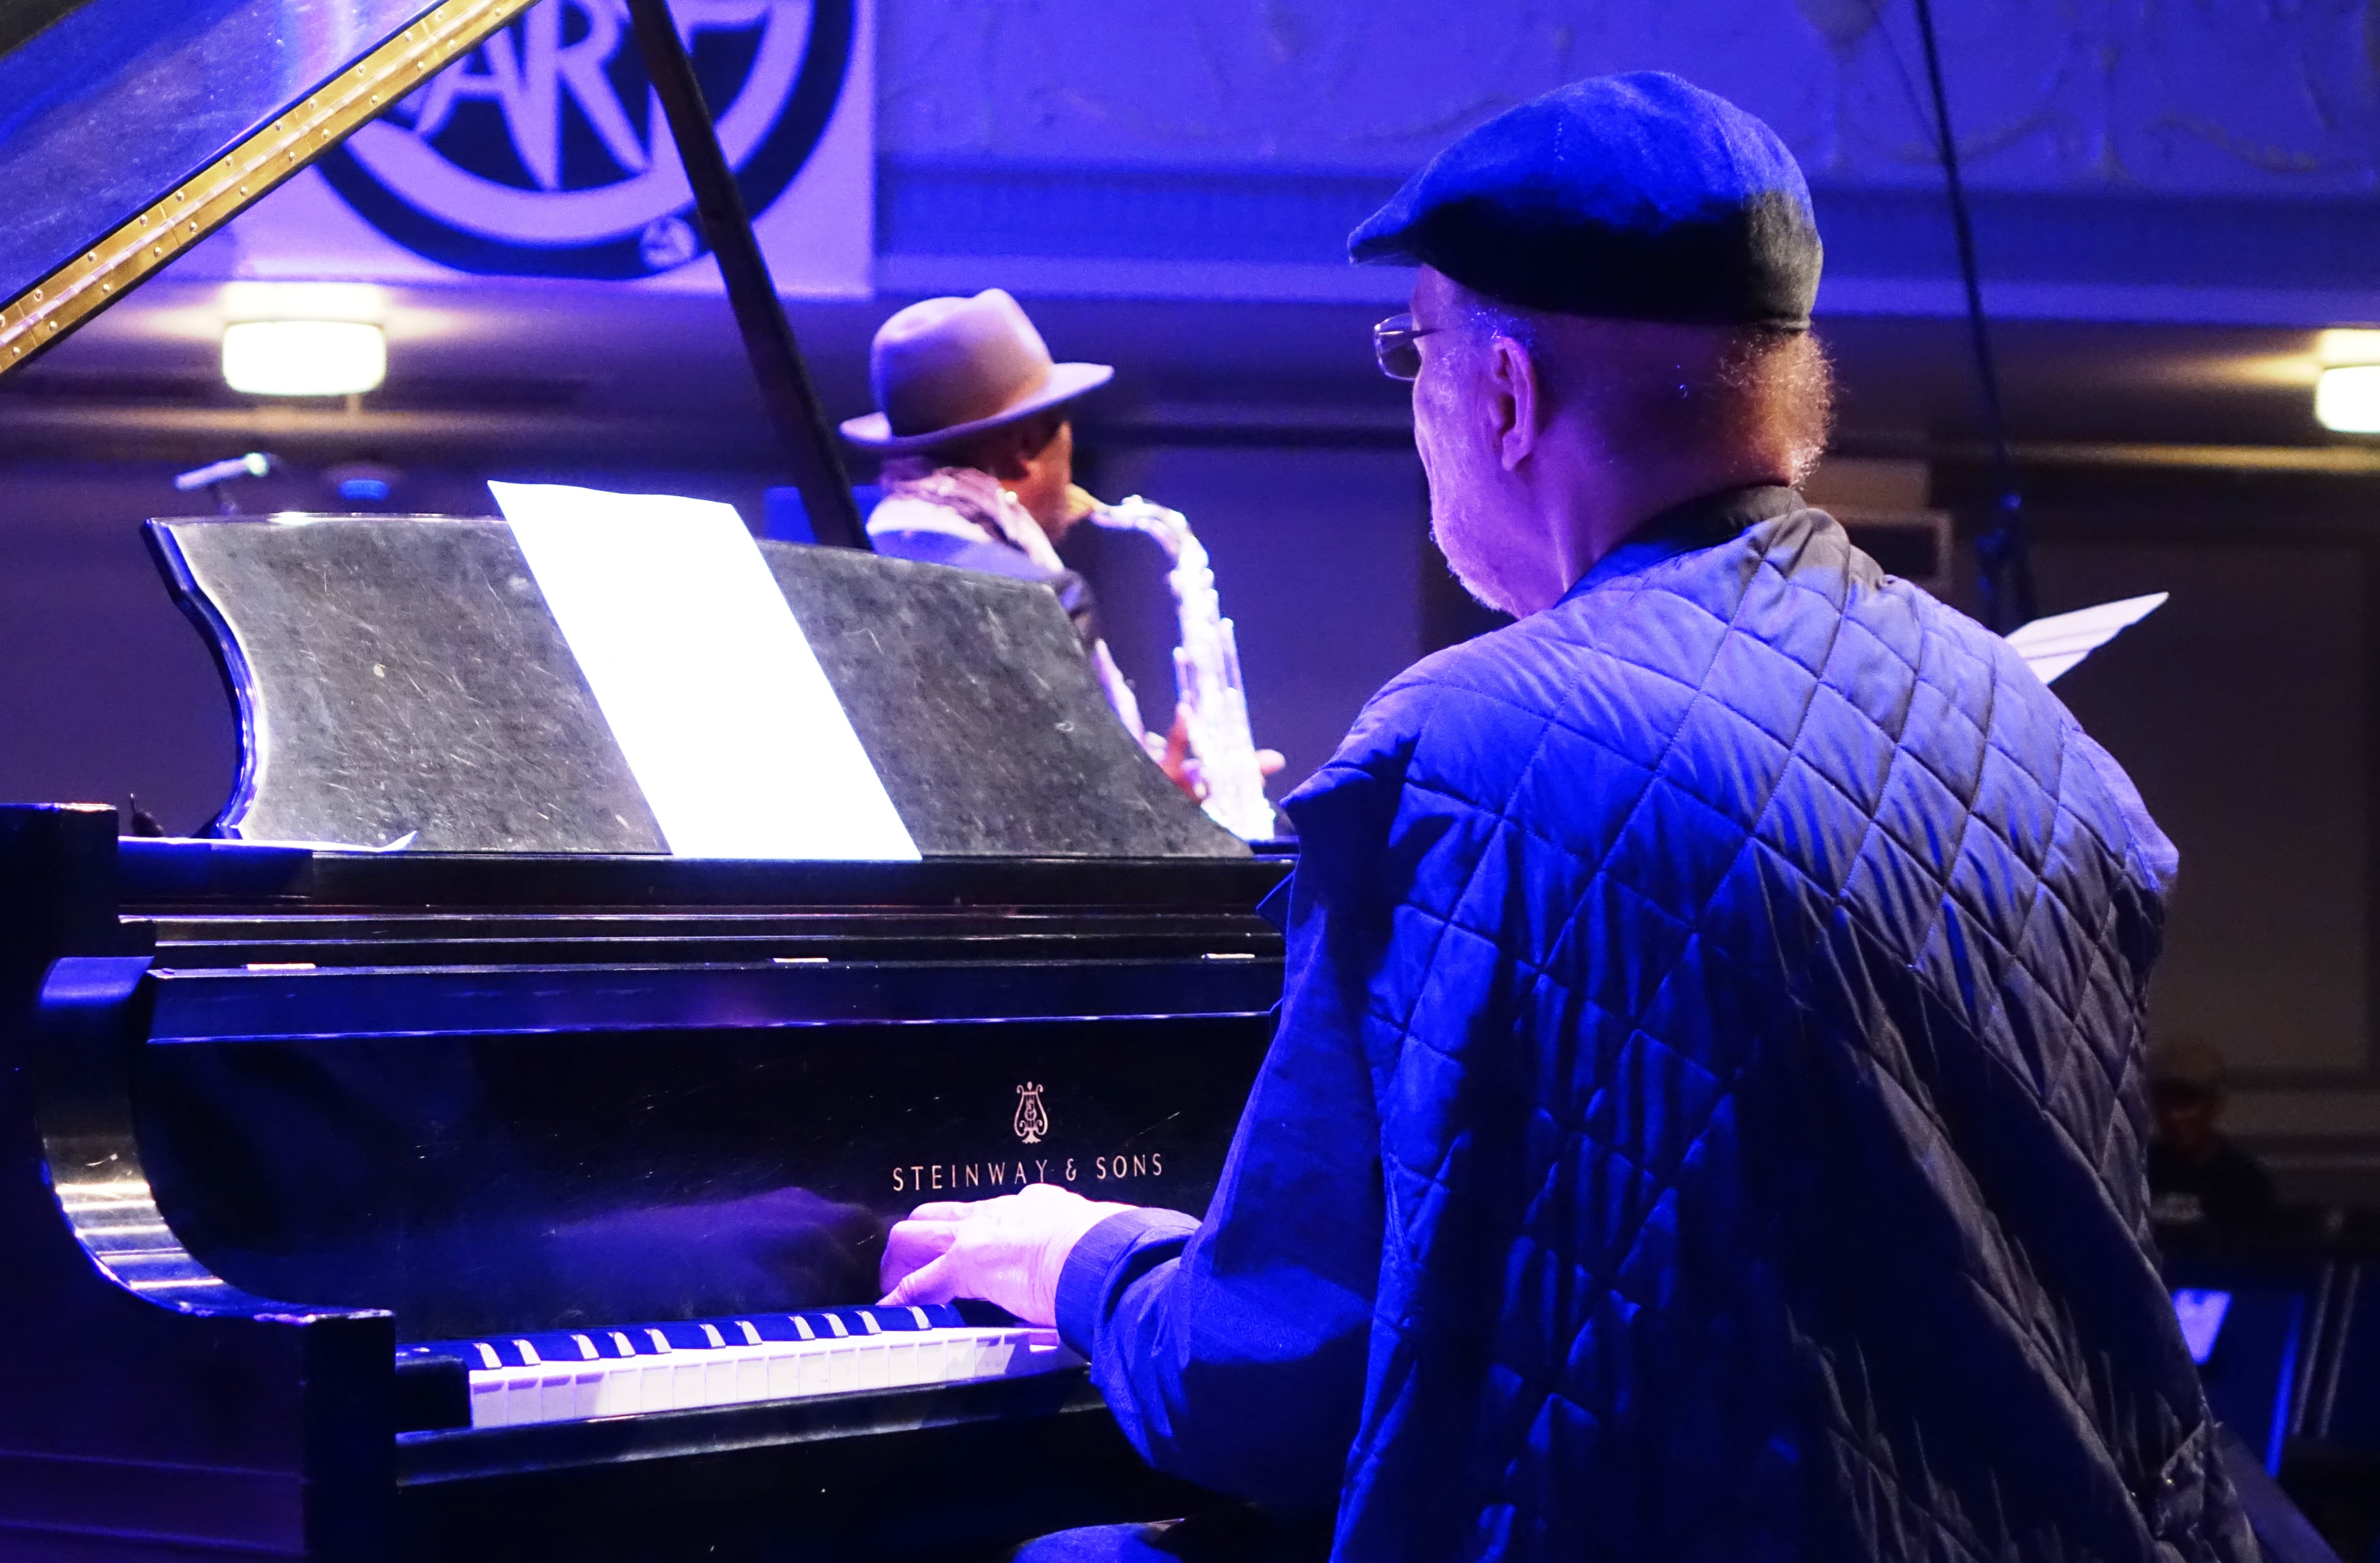 Dave Burrell and Archie Shepp at Roulette, Brooklyn in May 2018